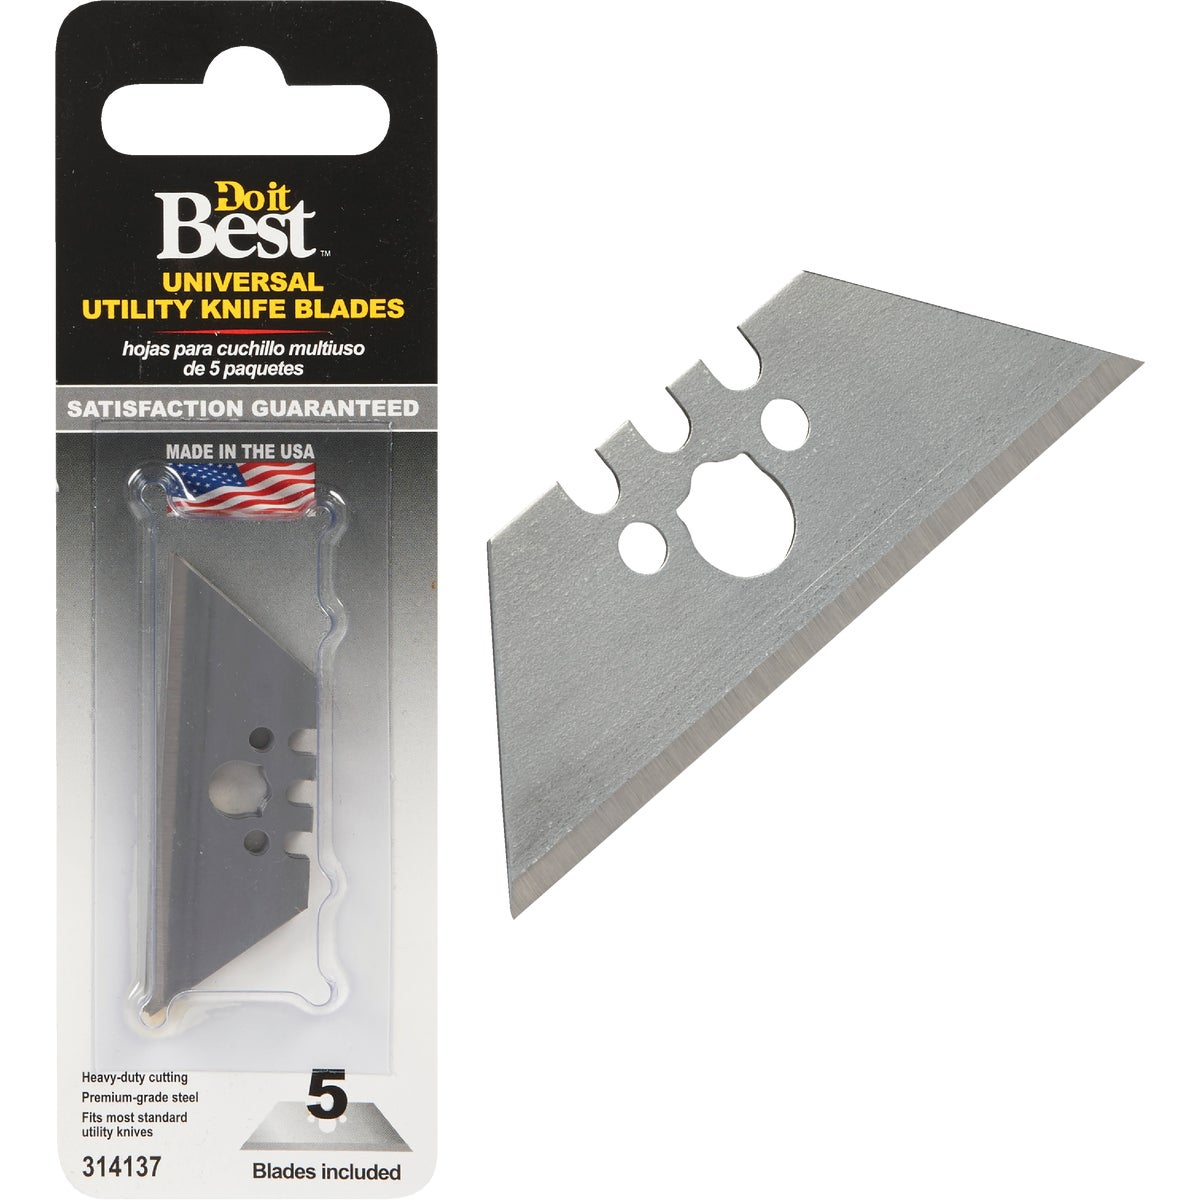 UNIVERSAL KNIFE BLADE - 314137 by Do it Best